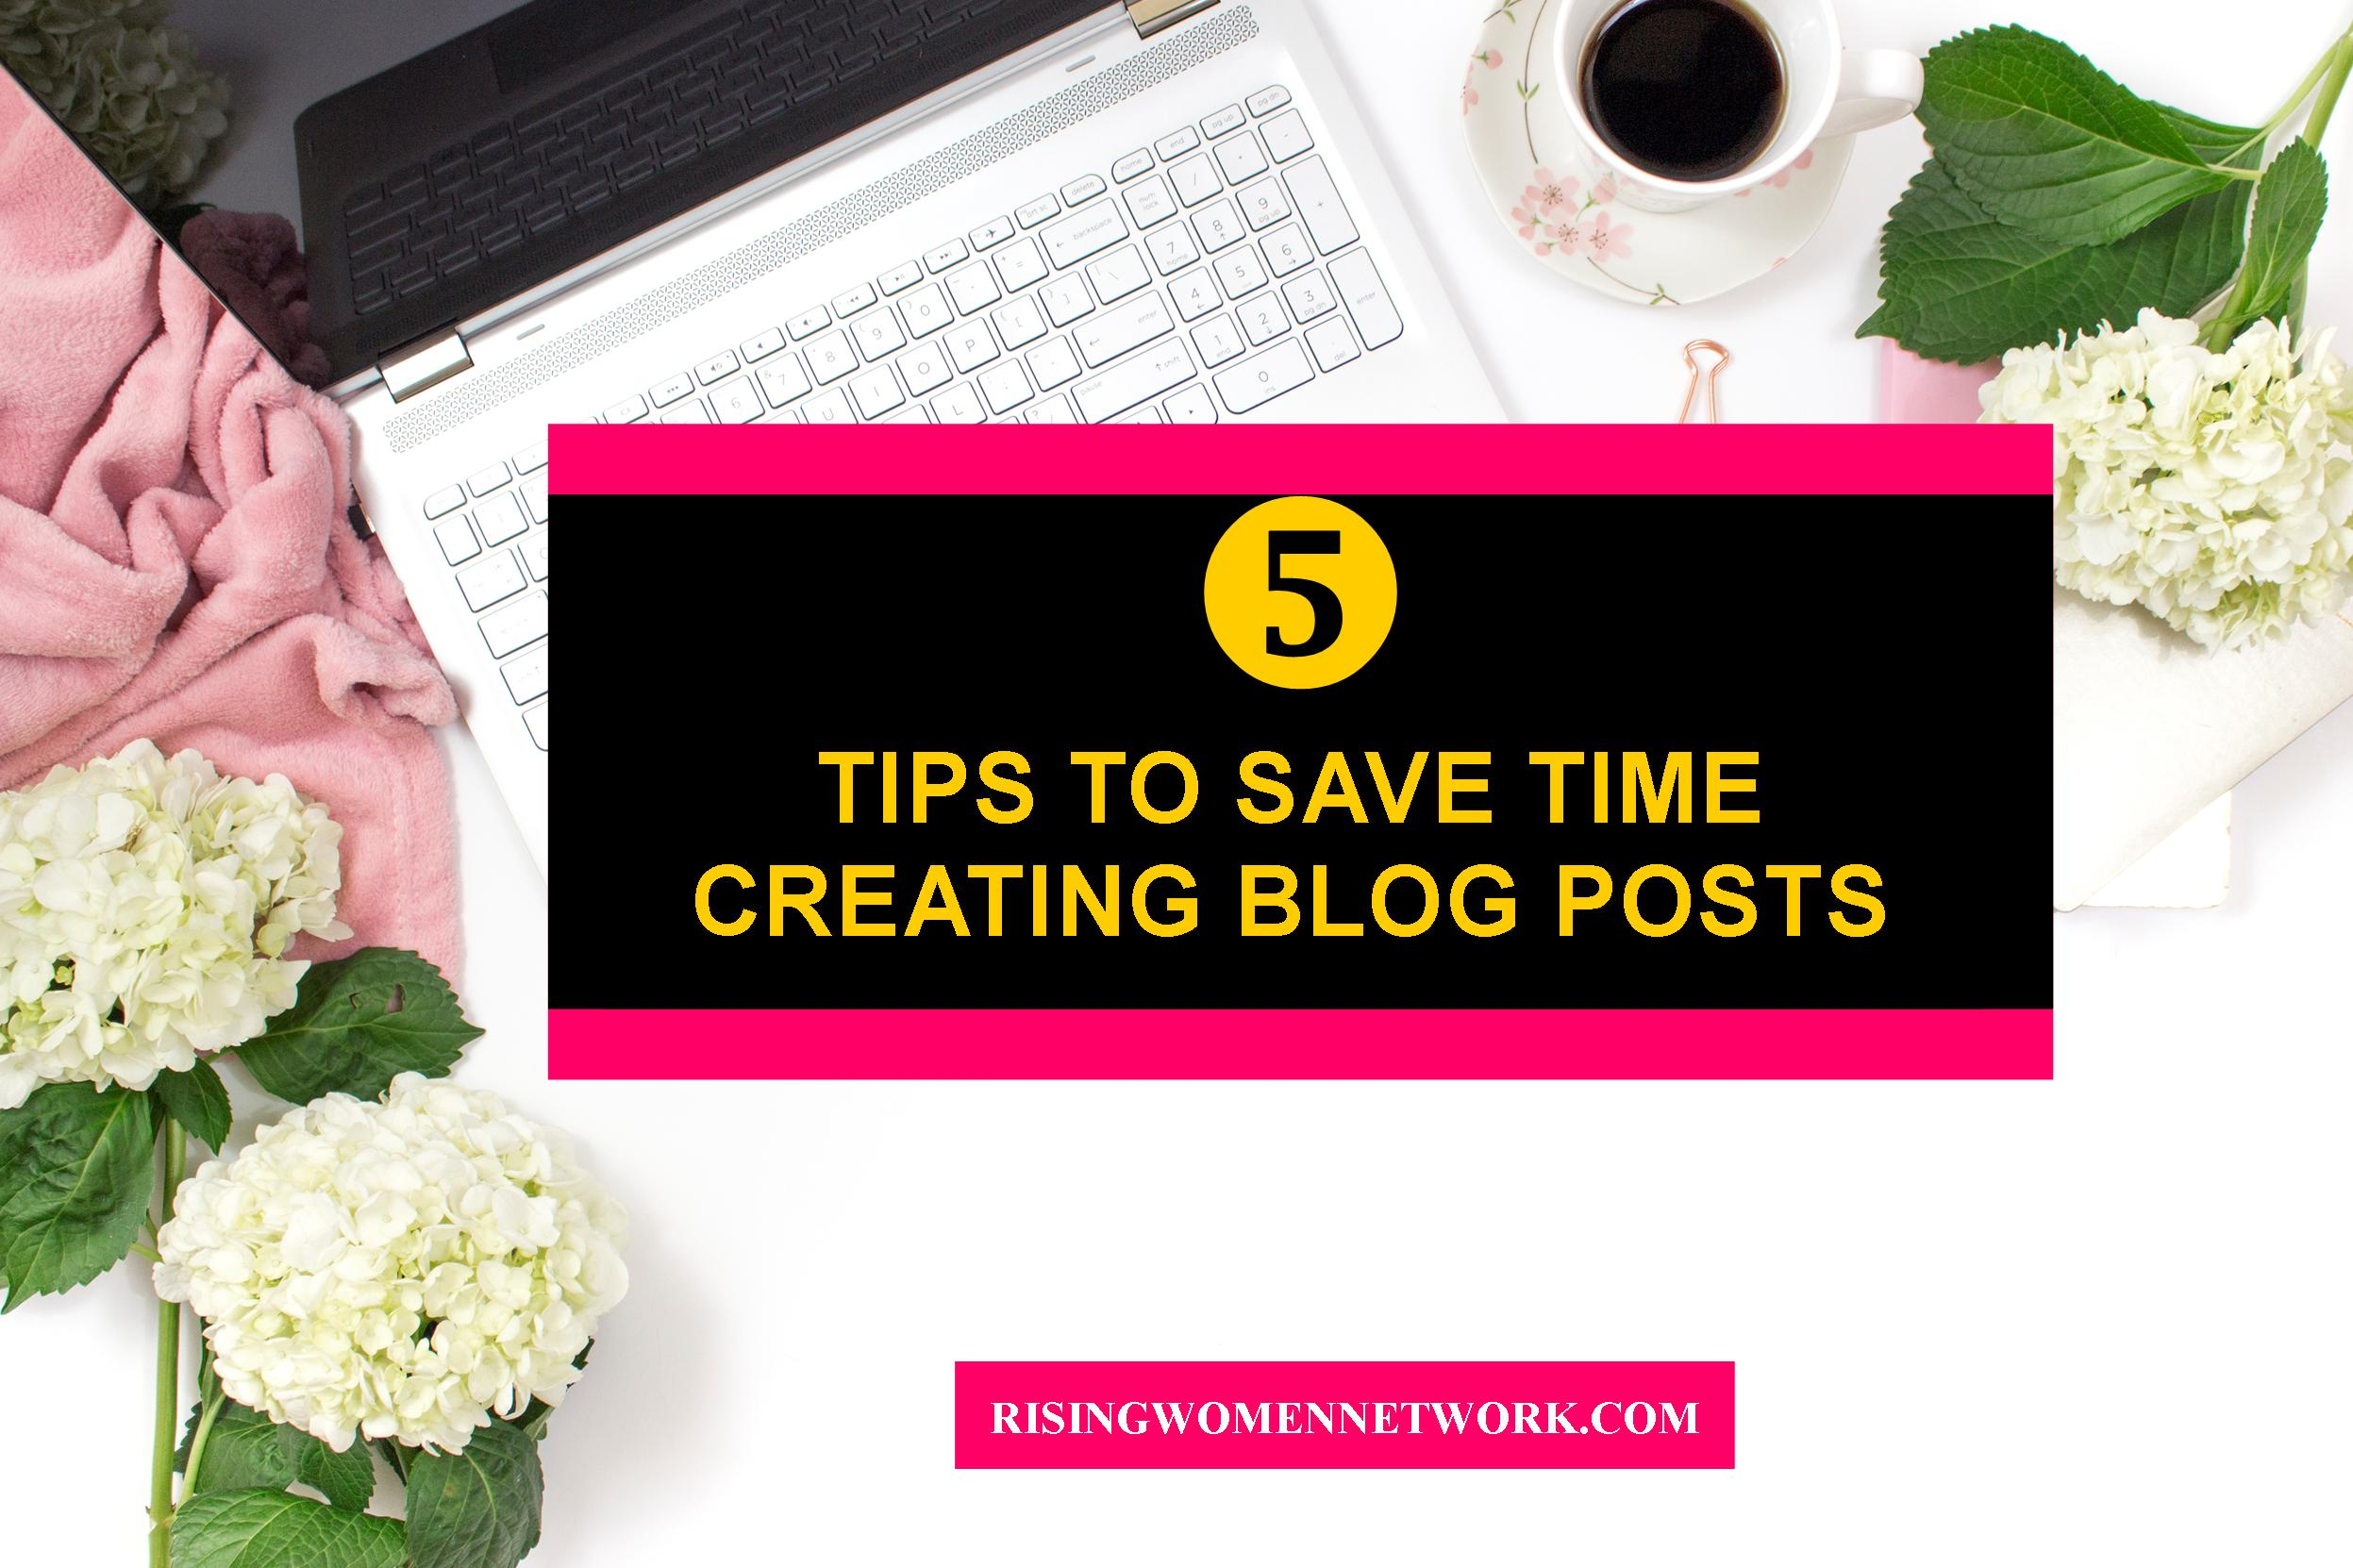 Wherever you're at with your blog, you now have the all tools you need to take it to the next level. We've done the research so you don't have to.